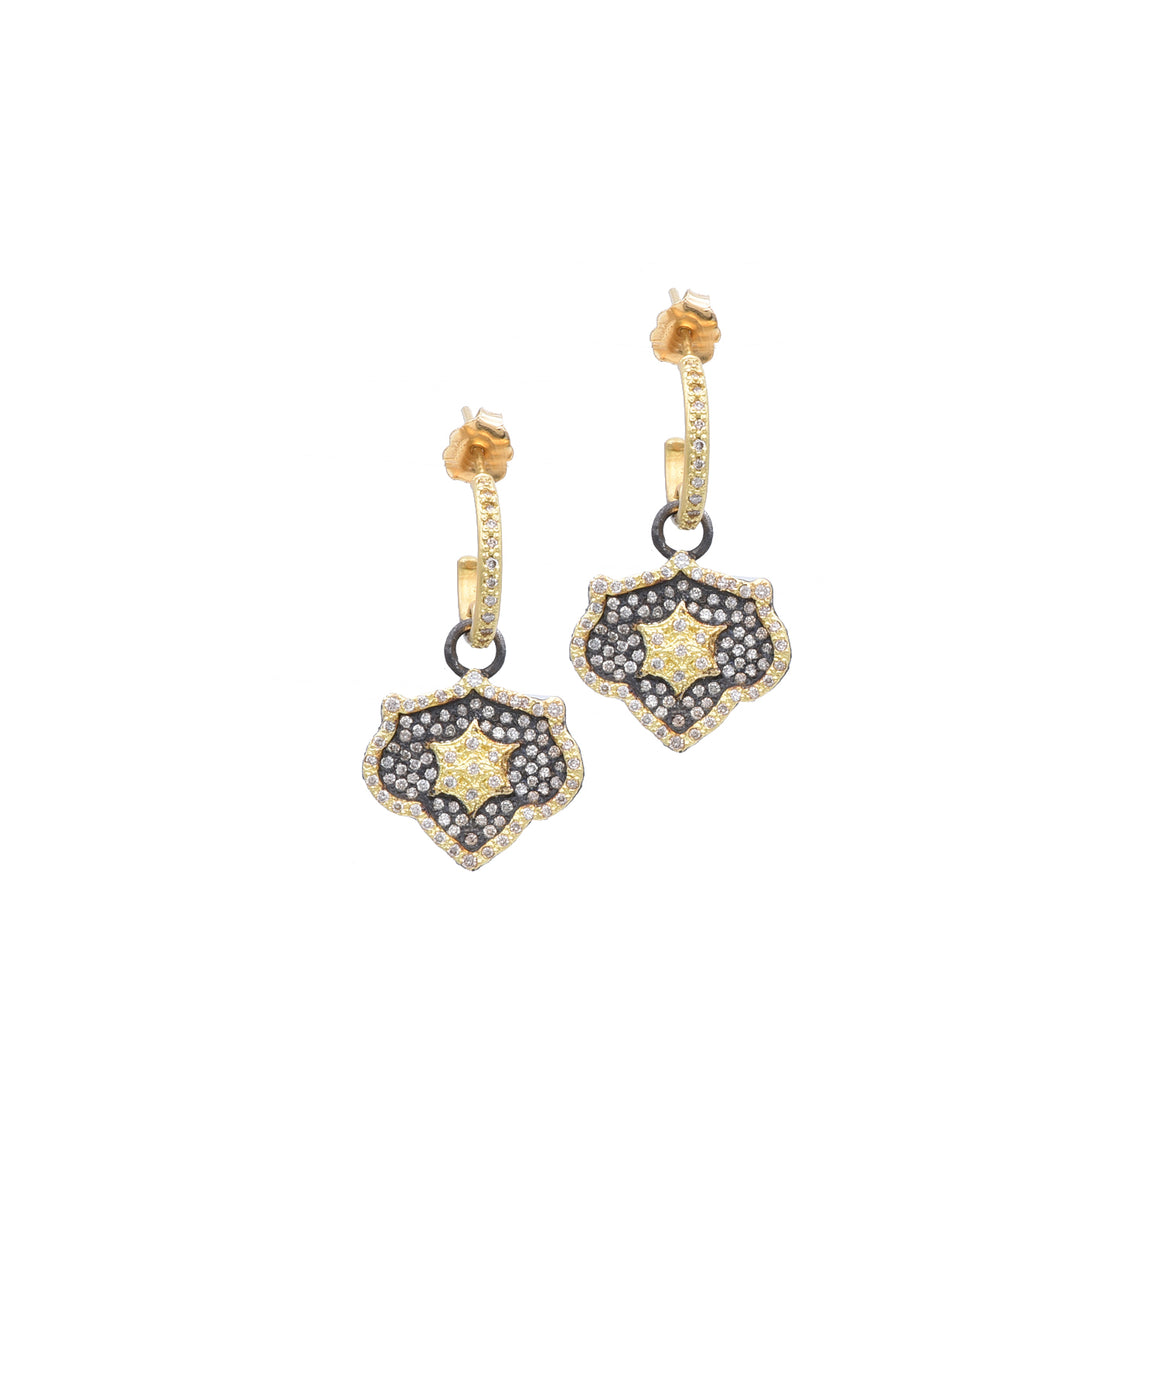 "The champagne diamond pavé shield drops swing from the huggie hoop tops. The 18k yellow gold and sterling silver earrings are 1 1/8"" long."